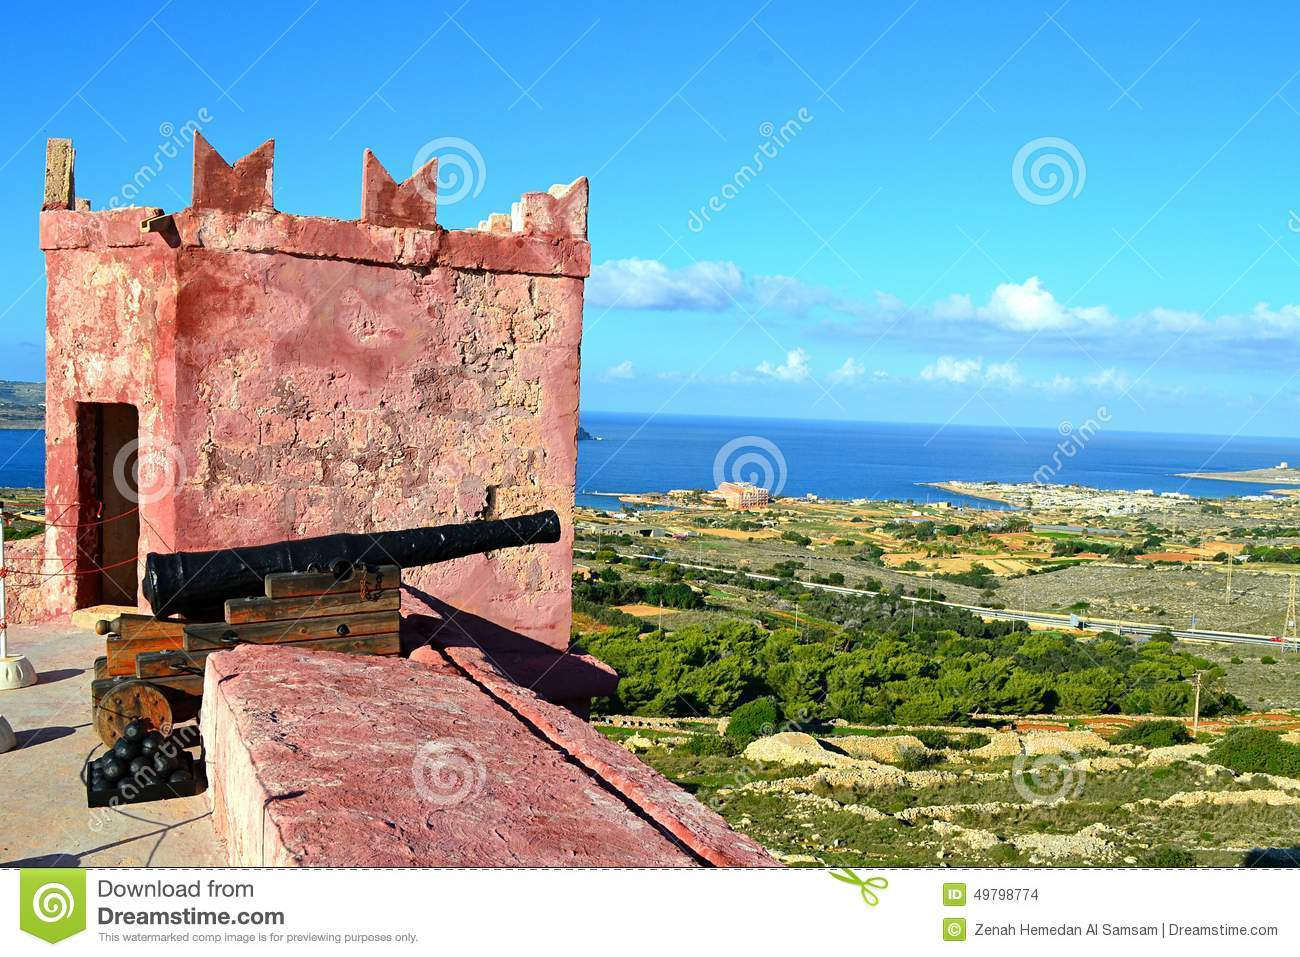 Beautiful Scene From The Red Tower North Of Malta Stock Photo - Image: 49798774